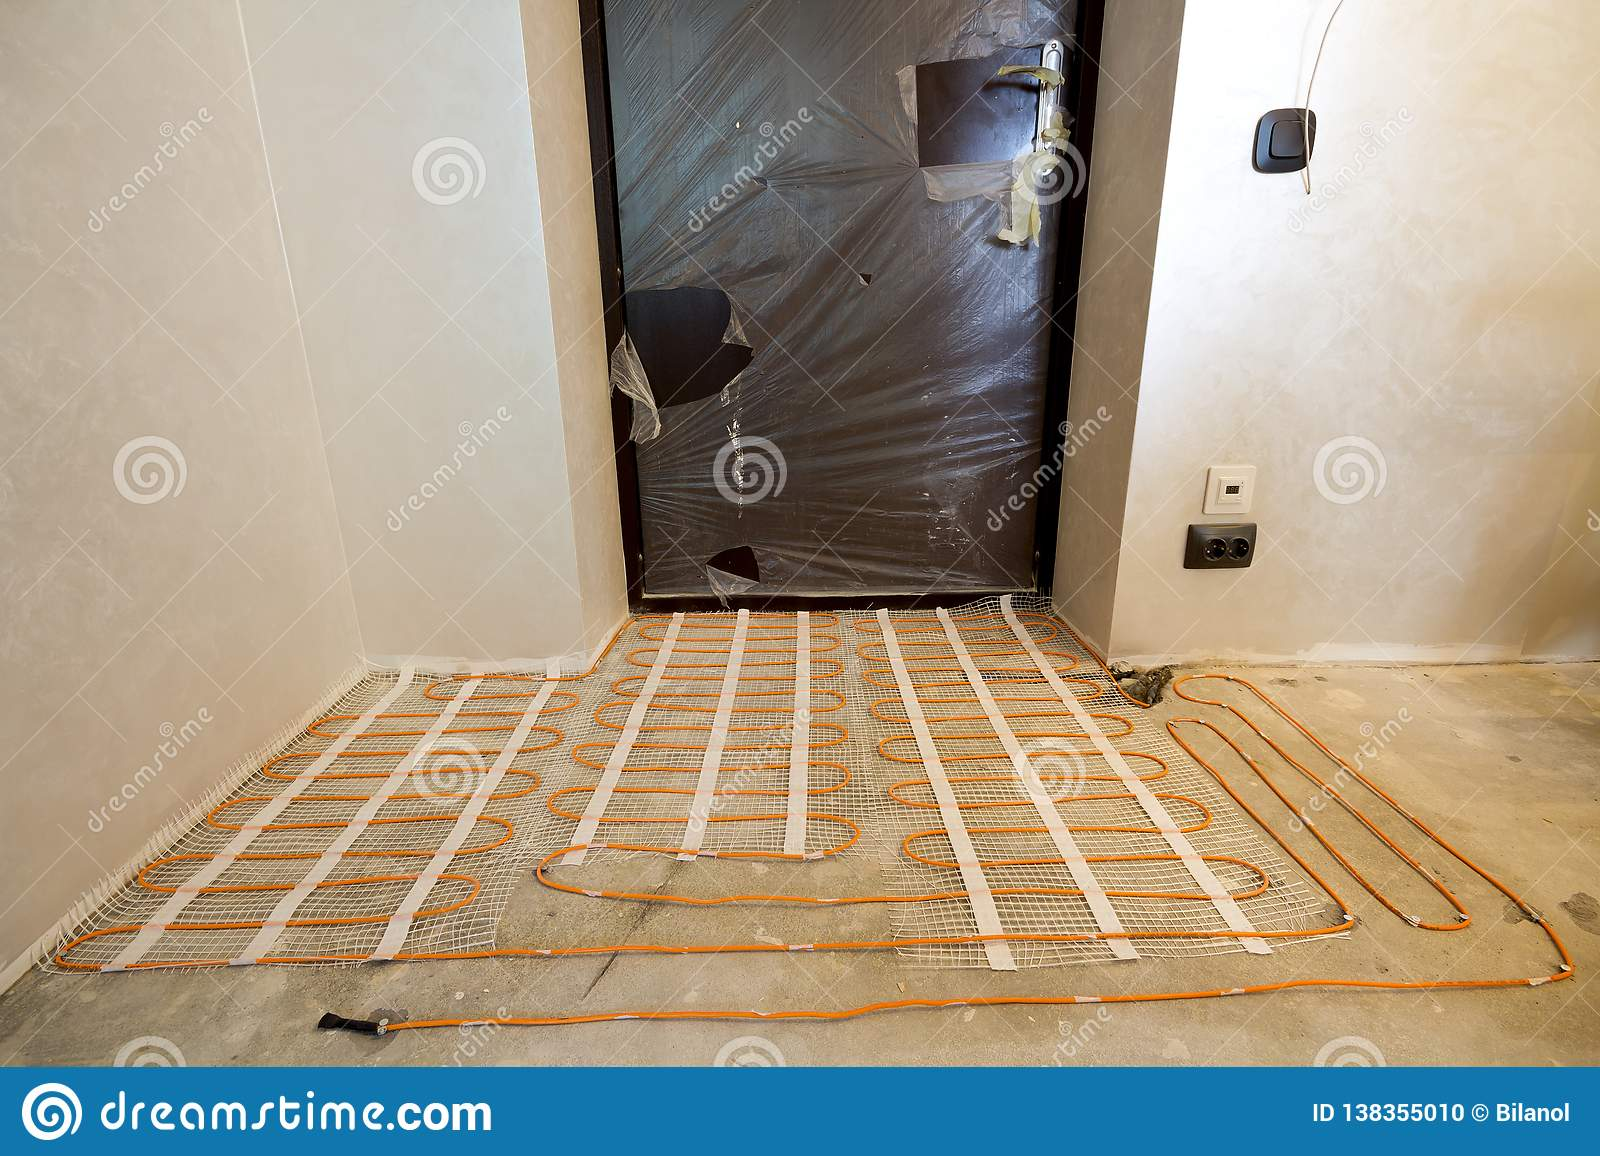 Miraculous Heating Red Electrical Cable Wire System Installed On Cement Floor Wiring Digital Resources Timewpwclawcorpcom